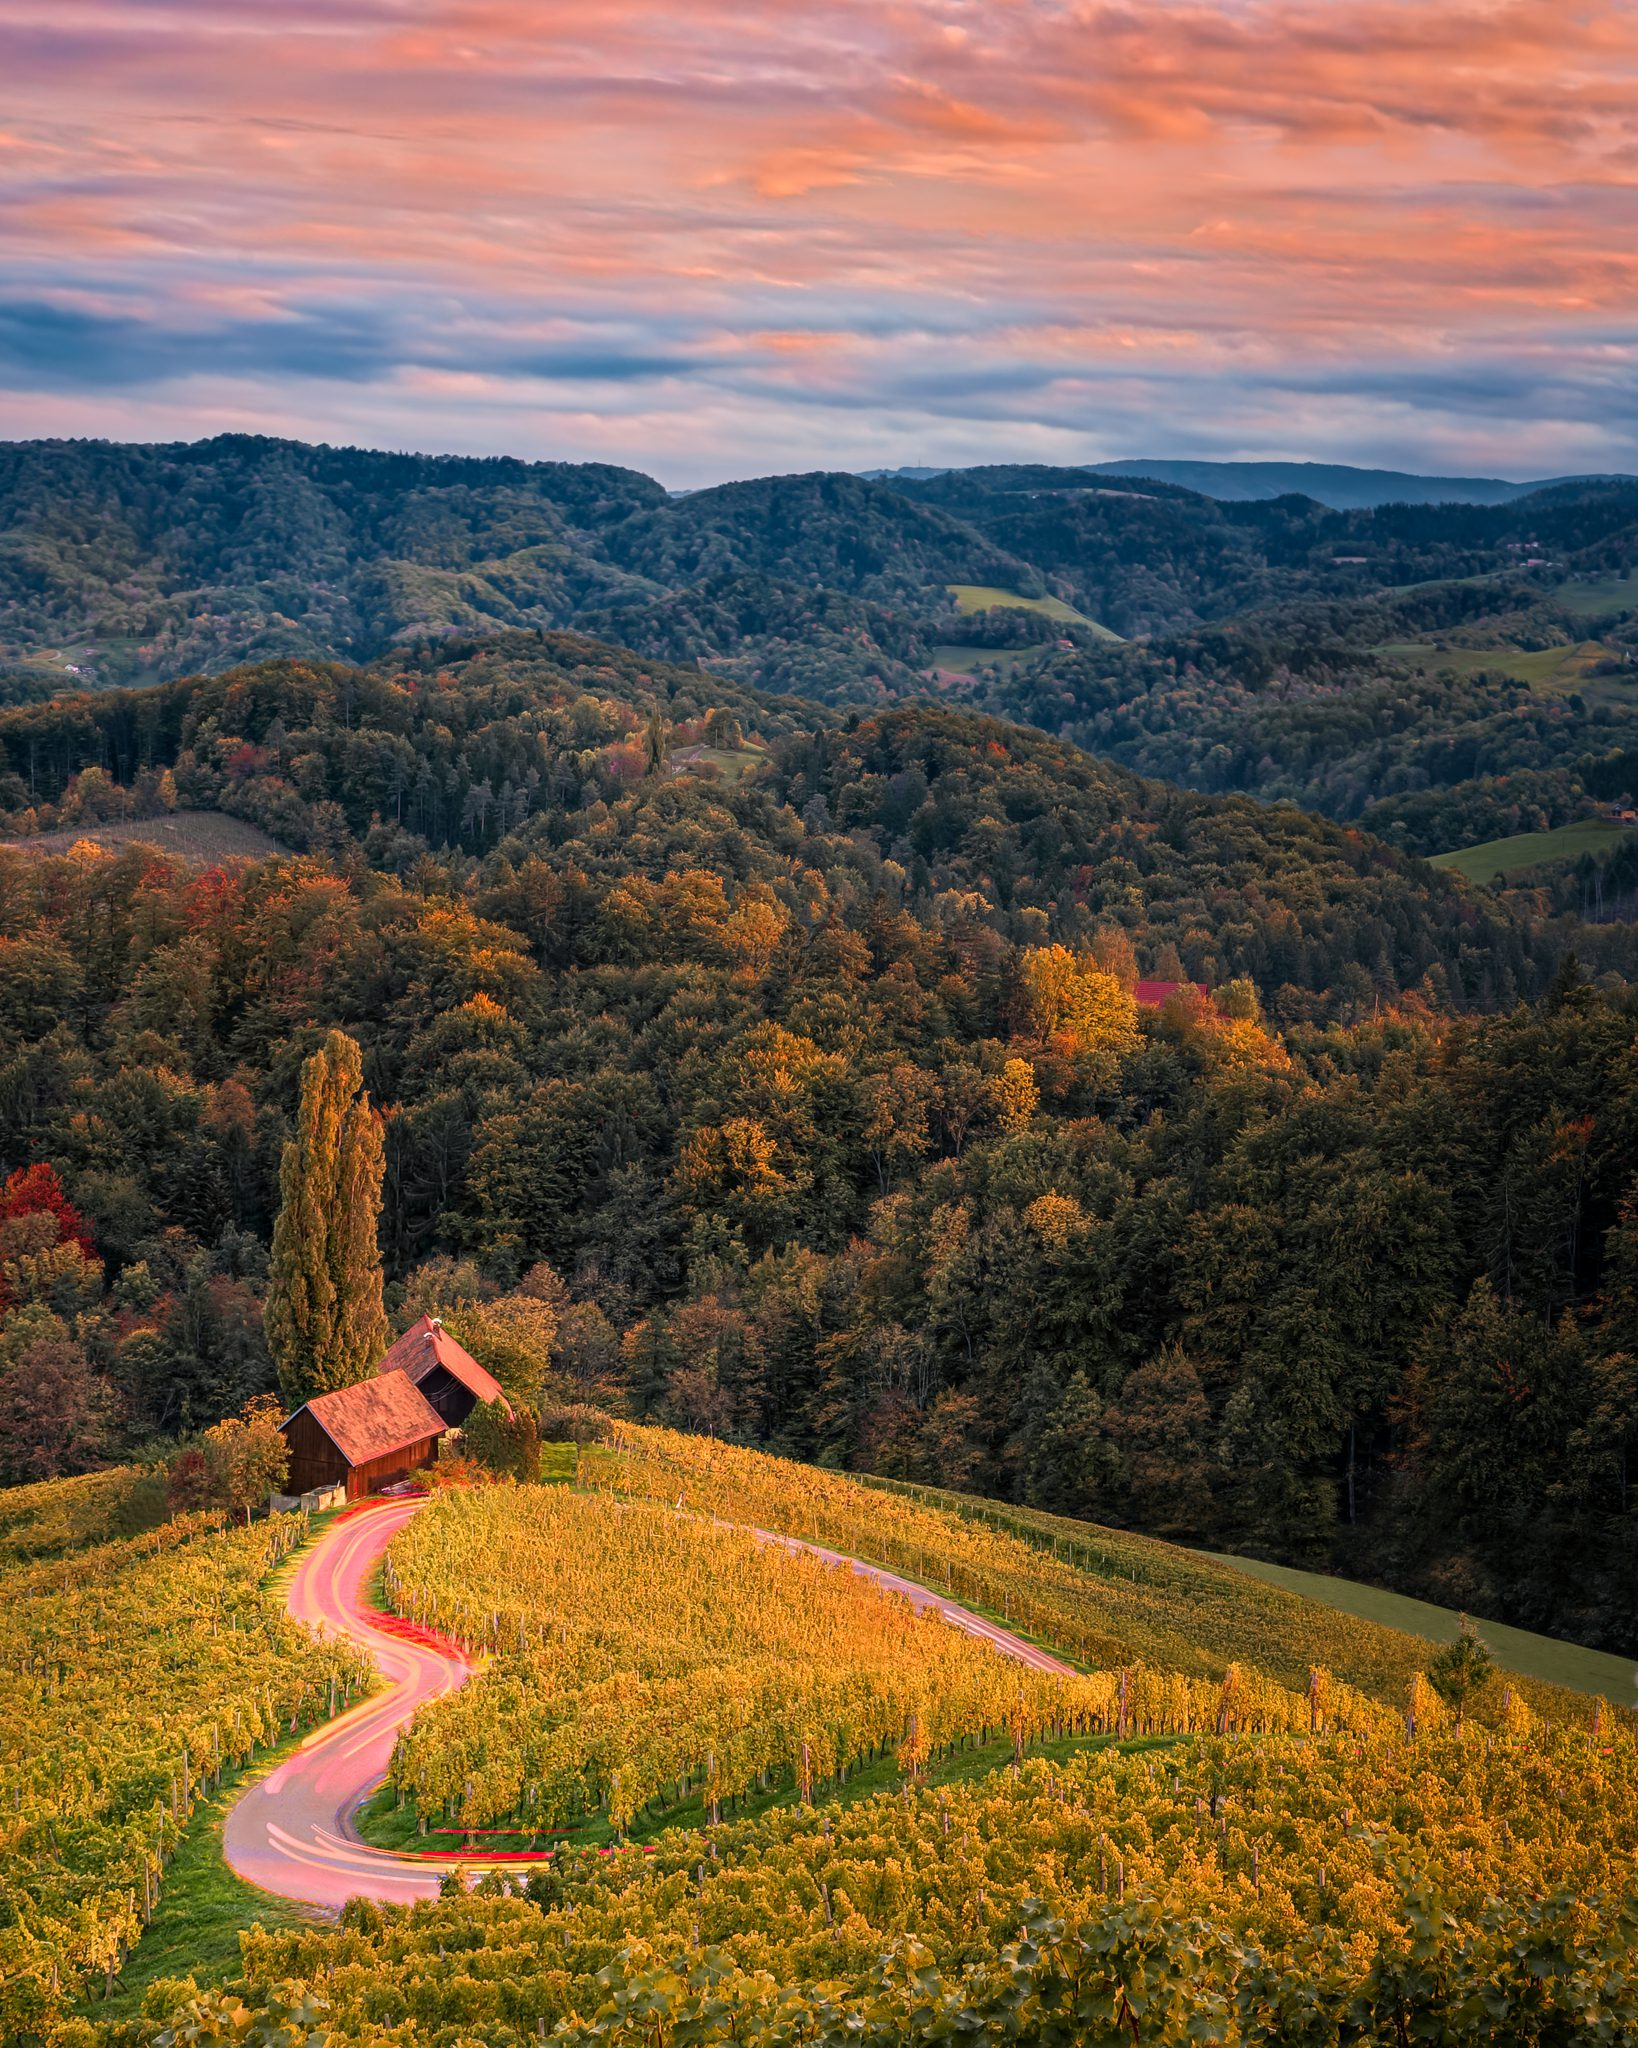 Although I love to travel I am also happy when I return home to Slovenia. As you can see, a lovely heart is weaved into our land...  The photo was made on a wonderful Dreisiebner vineyard in Zgornja Kungota. If you are ever in the vicinity, I highly recommend you to take the time and meet with friendly owners.